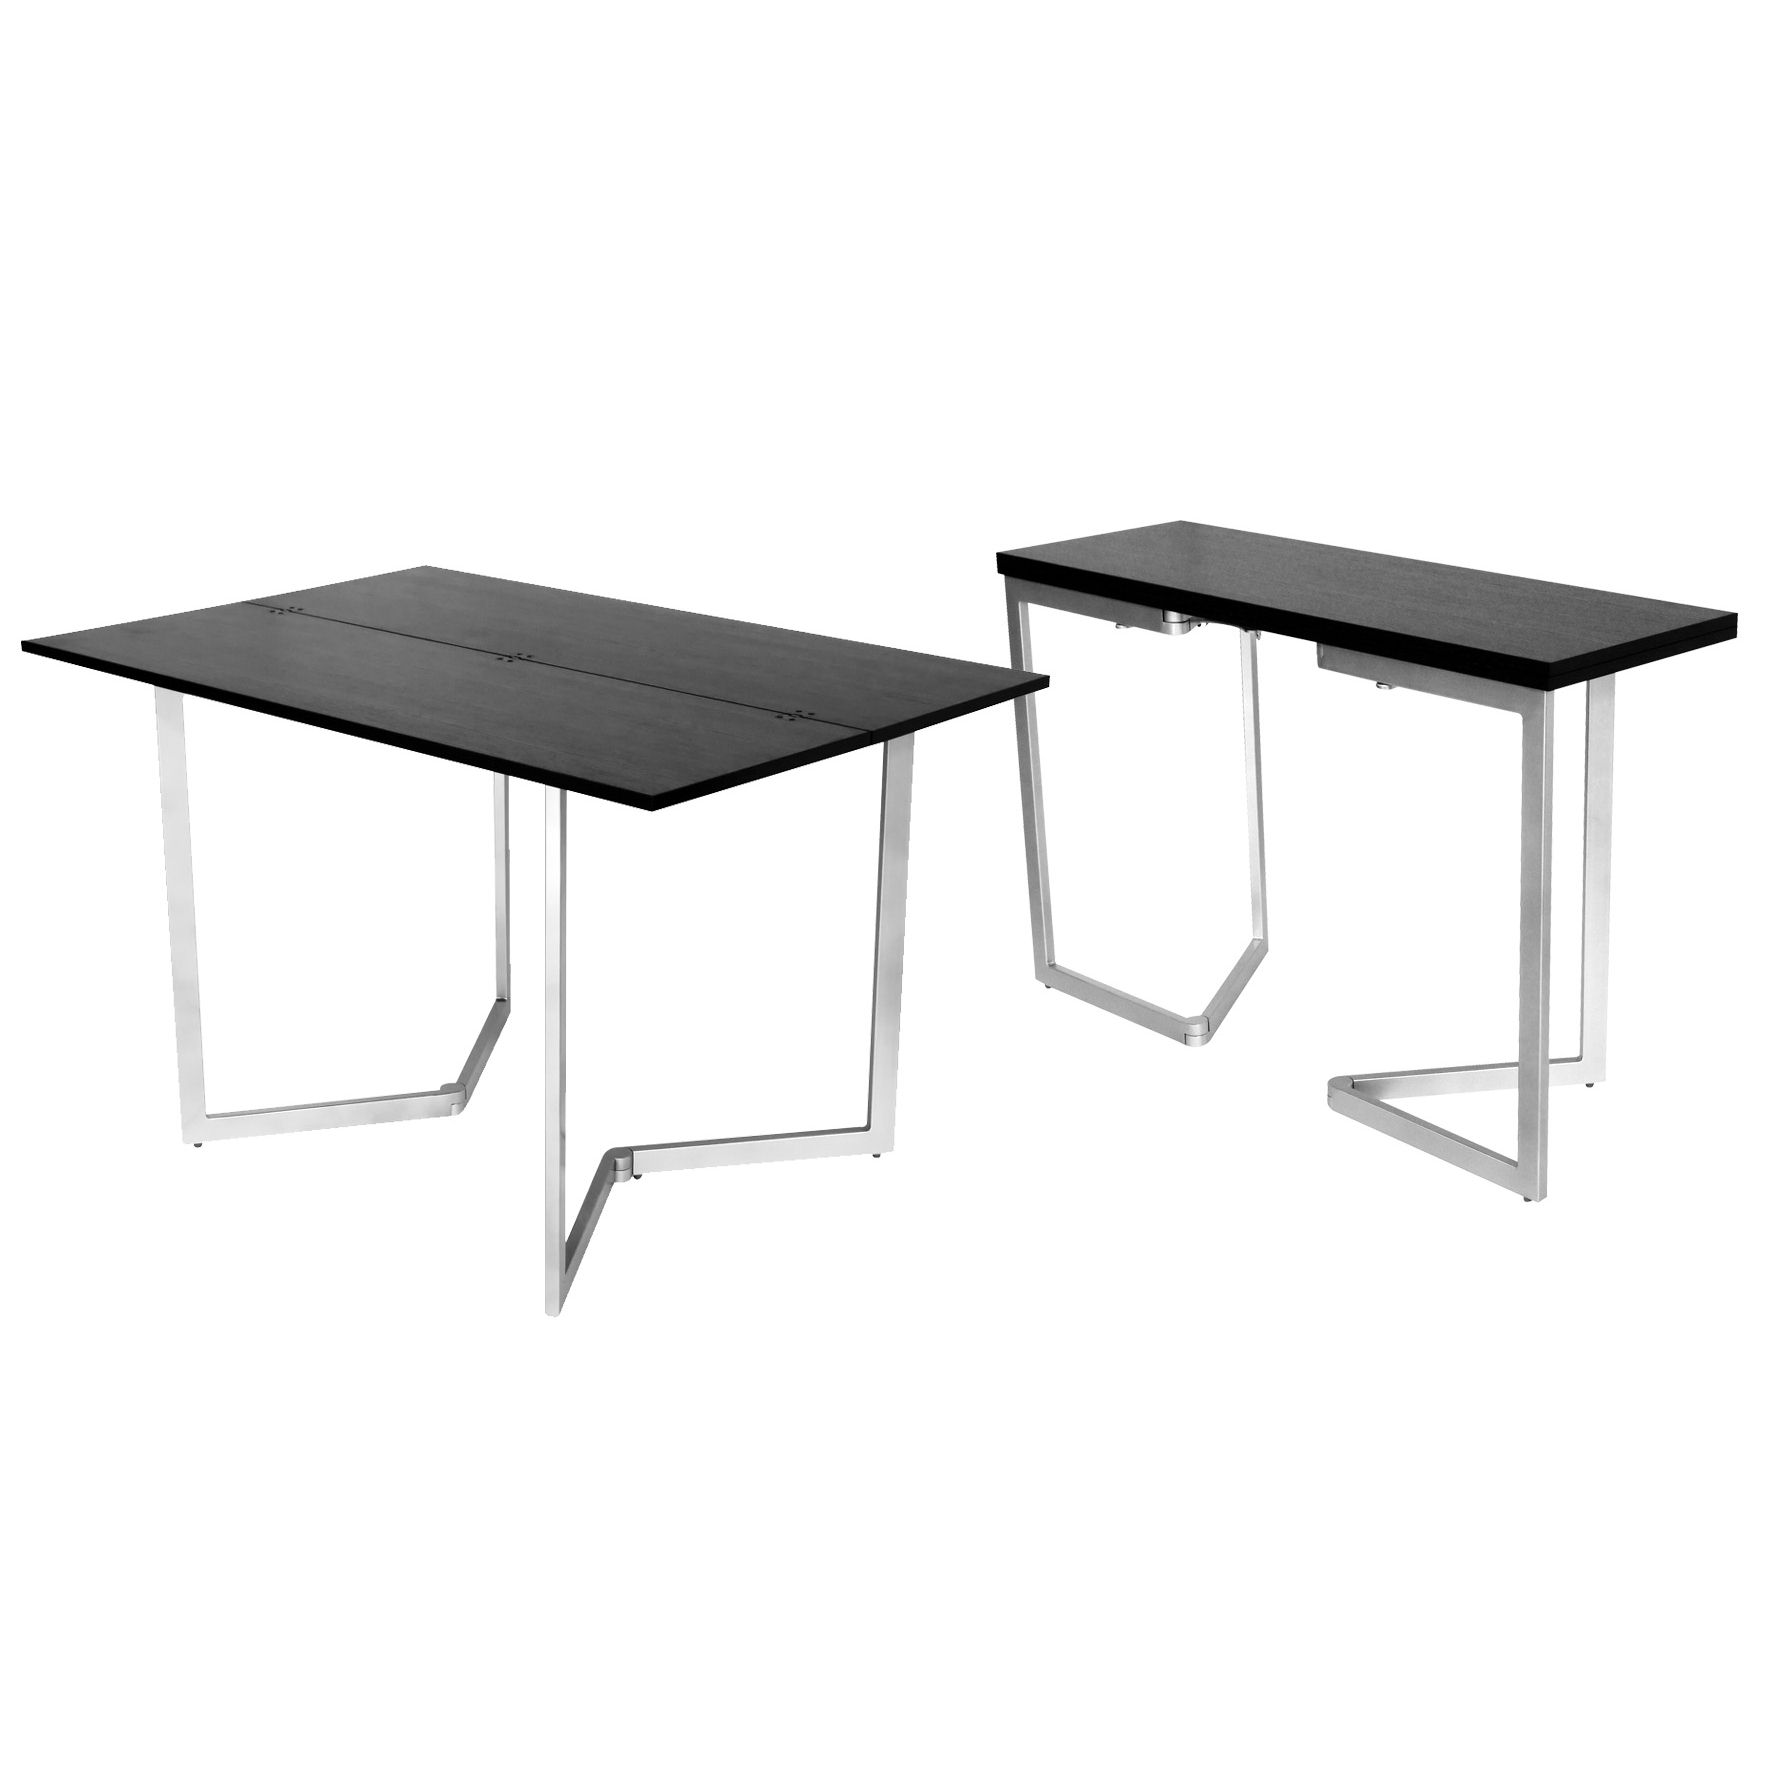 Table console extensible bois wenge for Table extensible metal bois